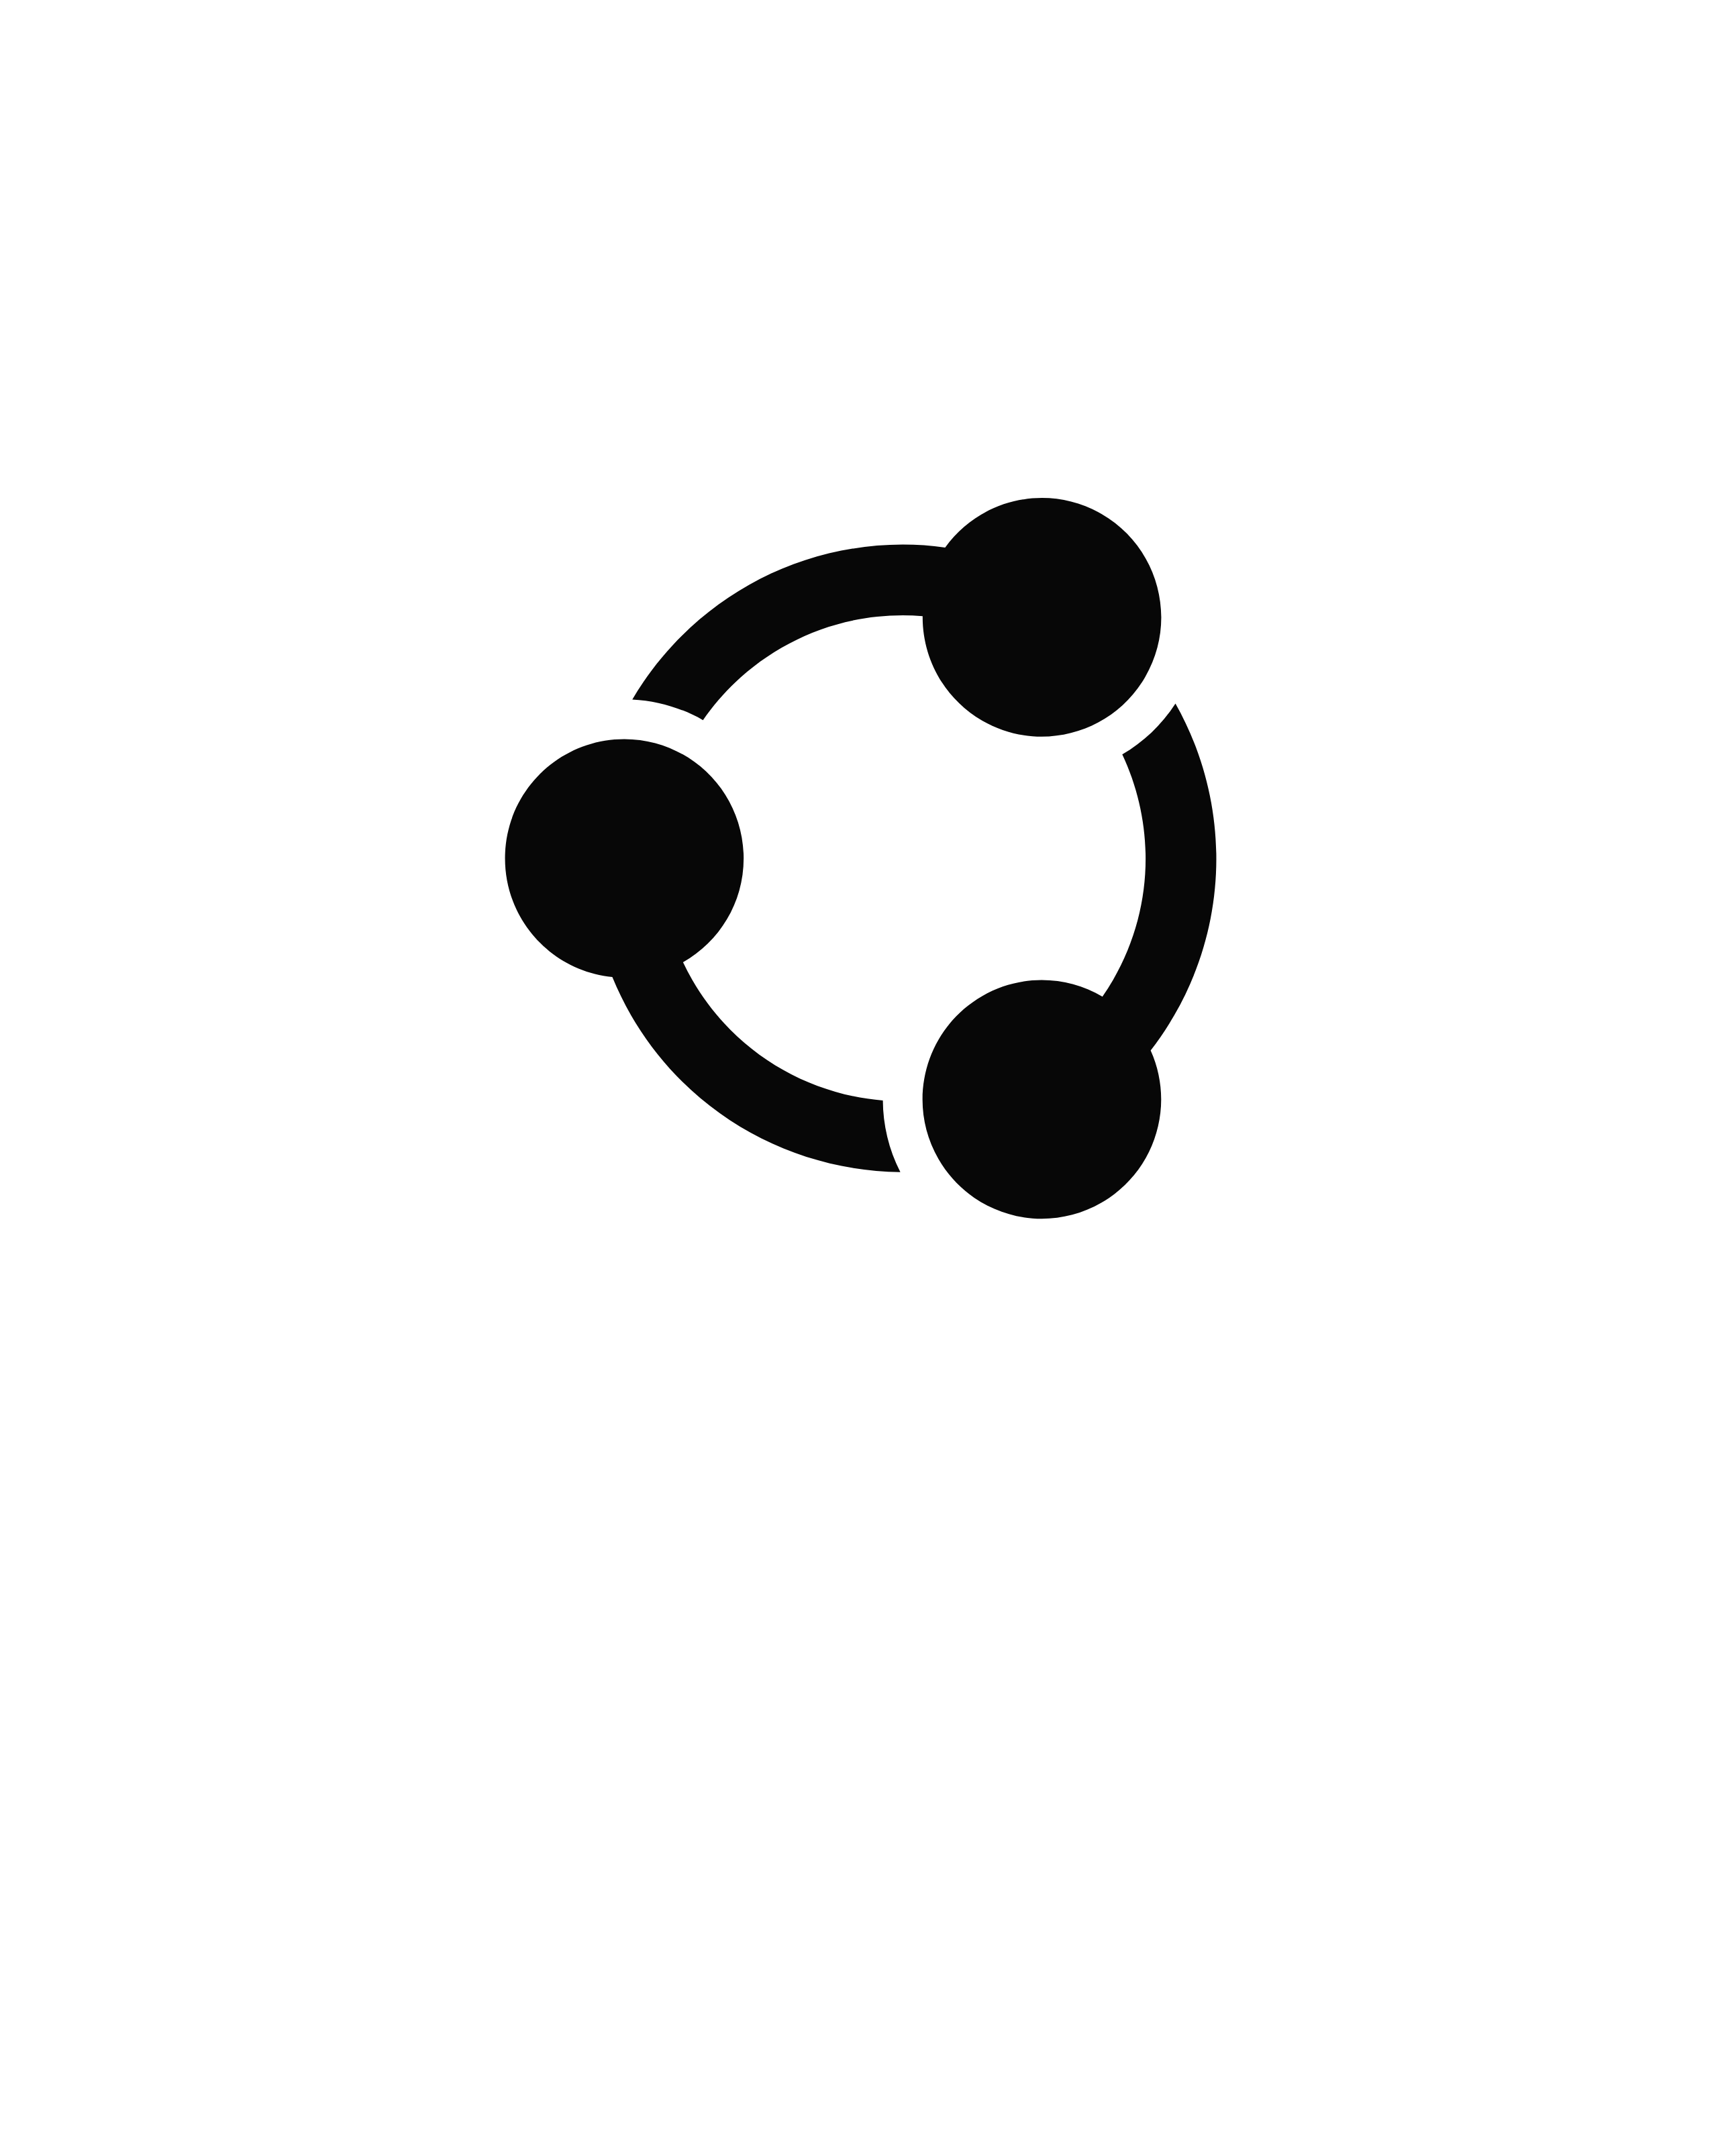 Martialconnect